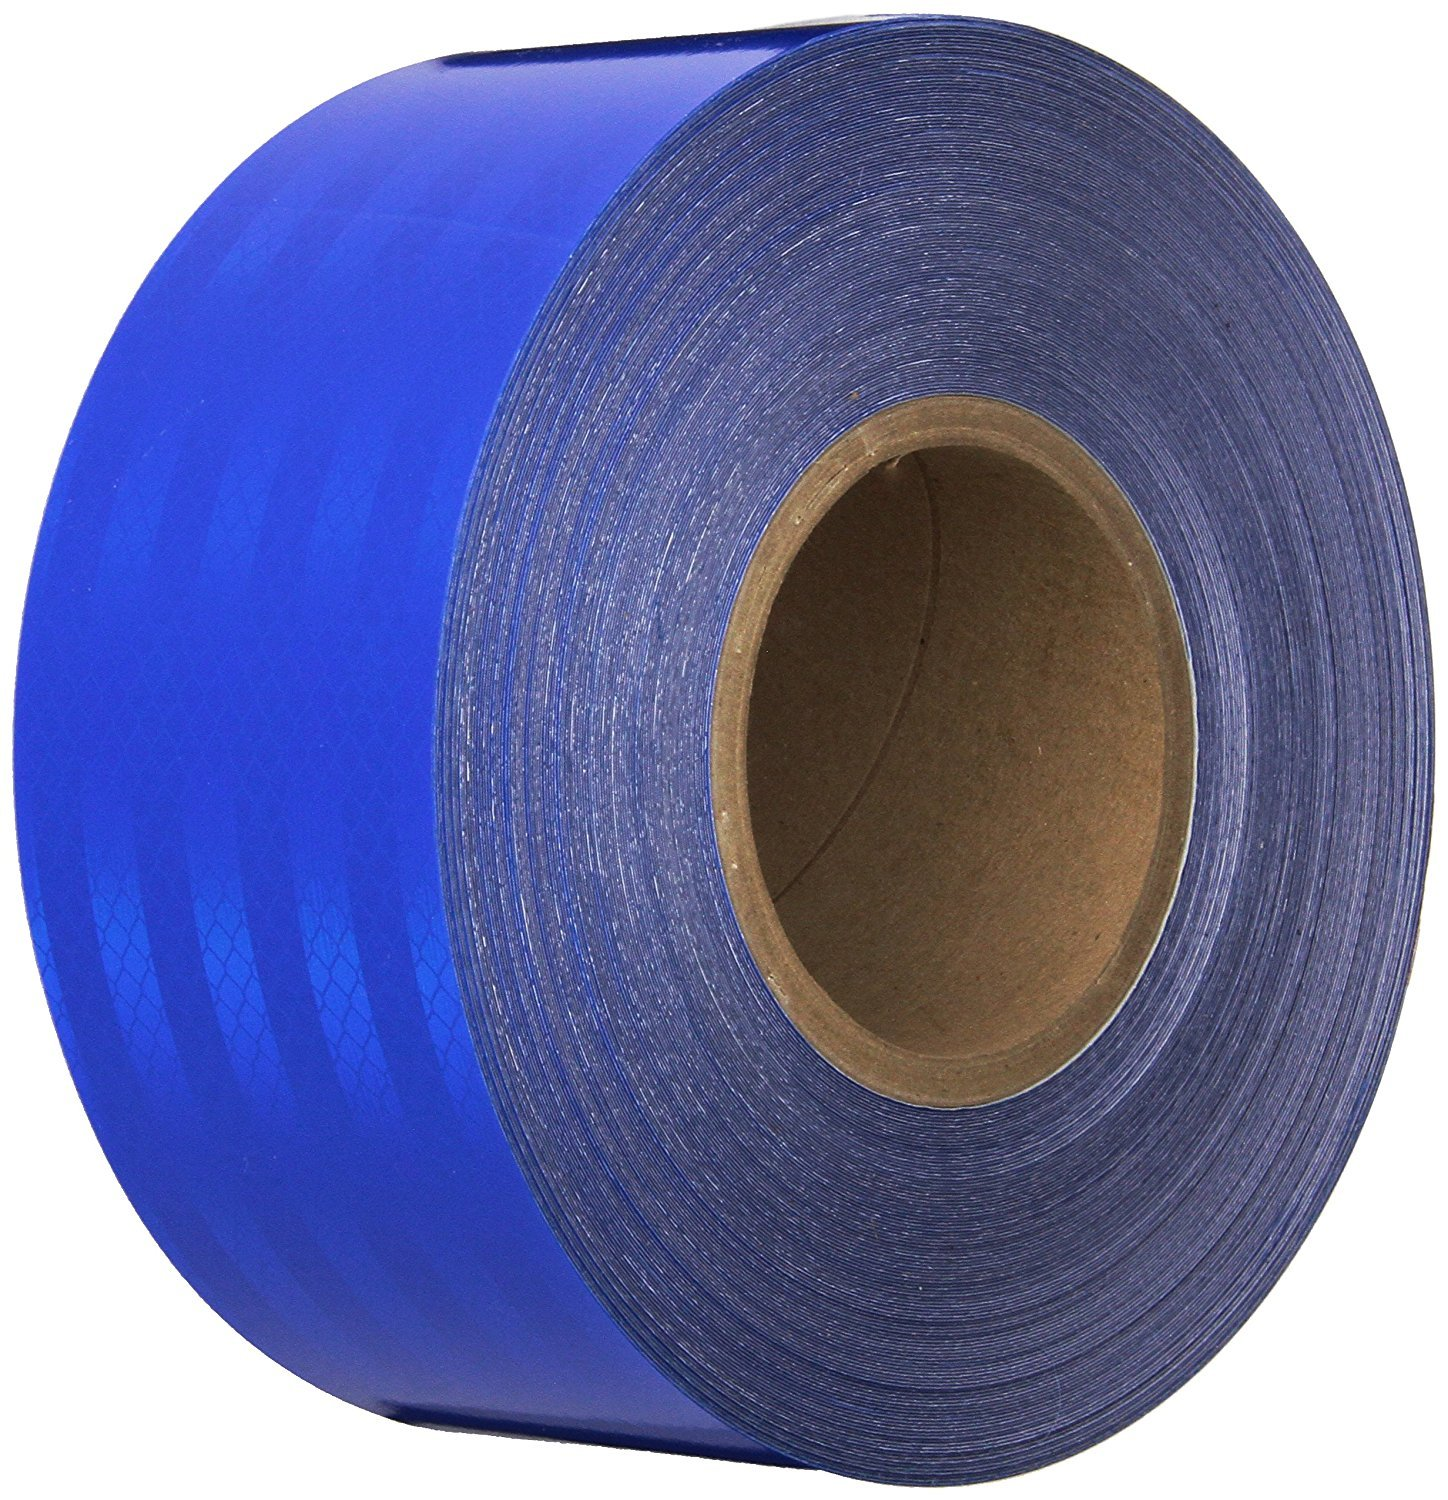 3M 3435 Blue Reflective Tape Roll – 4 in. x 150